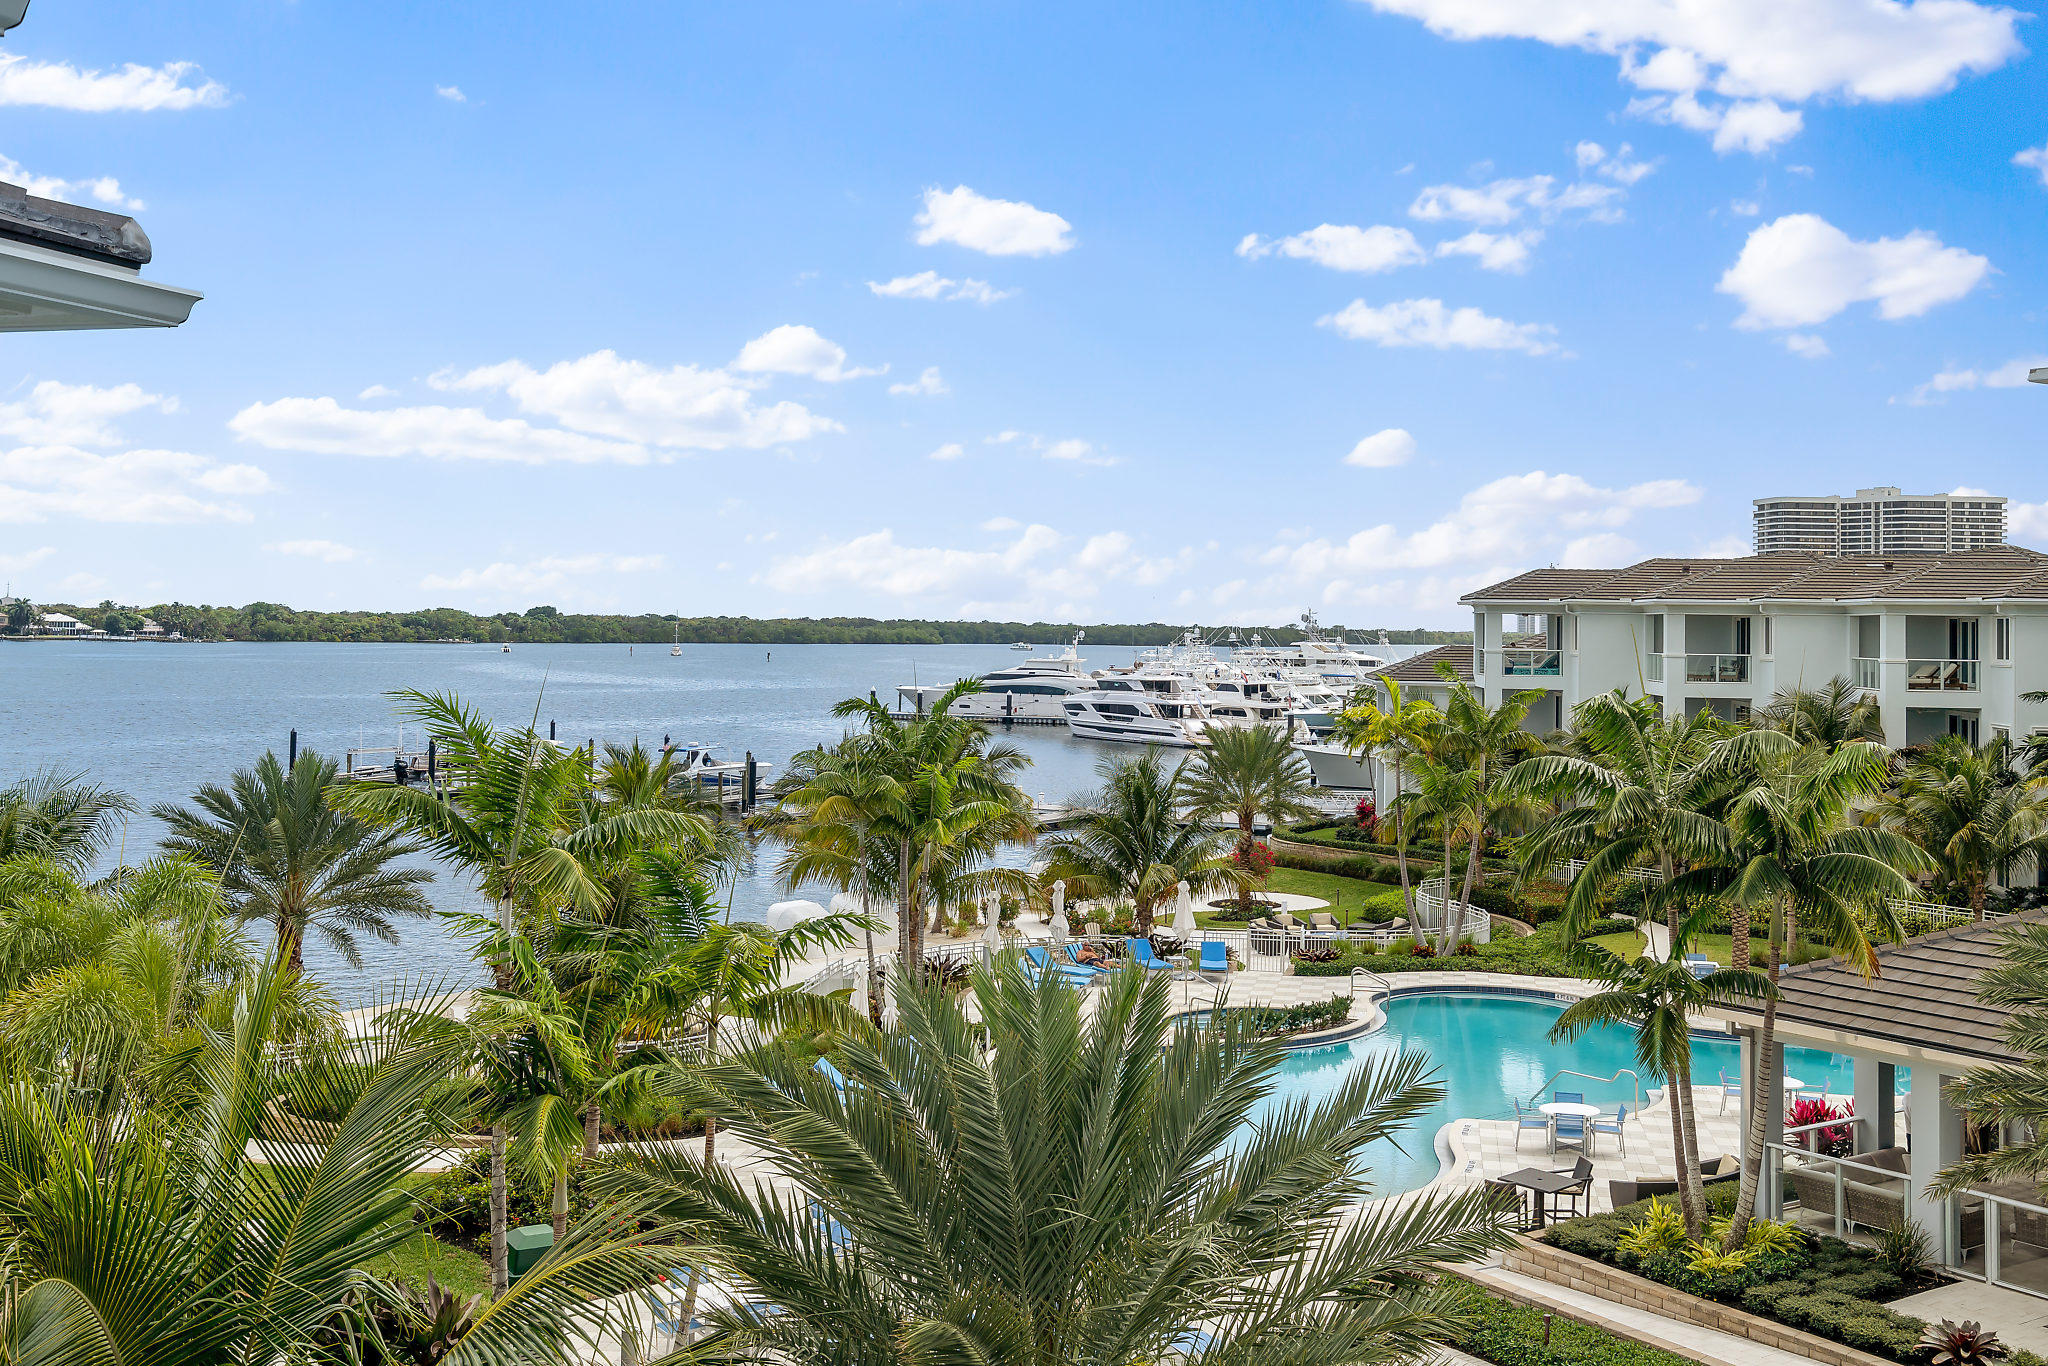 049-108WaterClubCtN-NorthPalmBeach-FL-sm